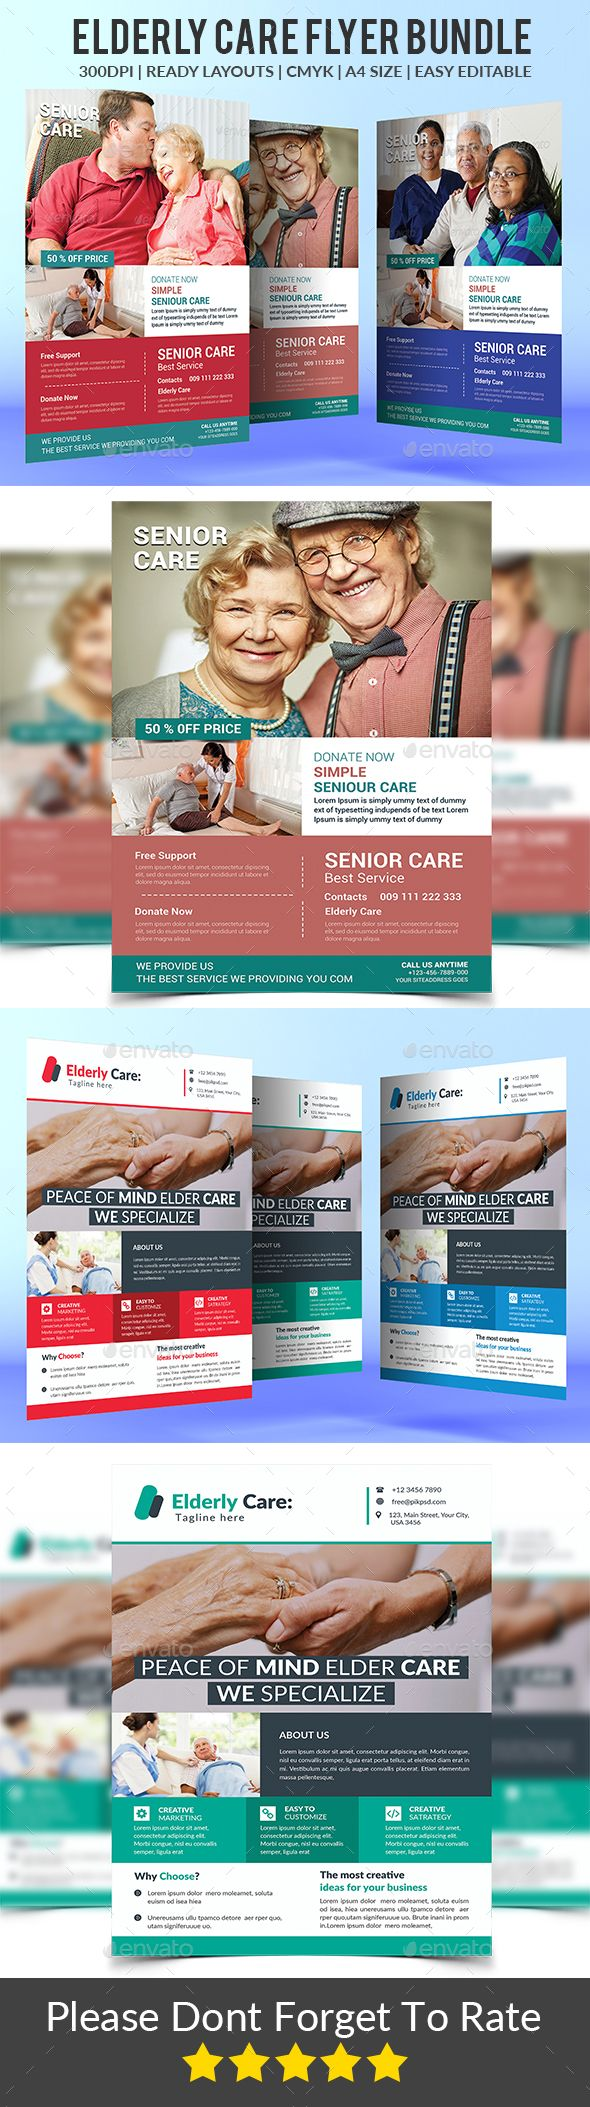 Elderly Care Flyers Bundle Elderly Care Nursing Agencies Lawn Care Business